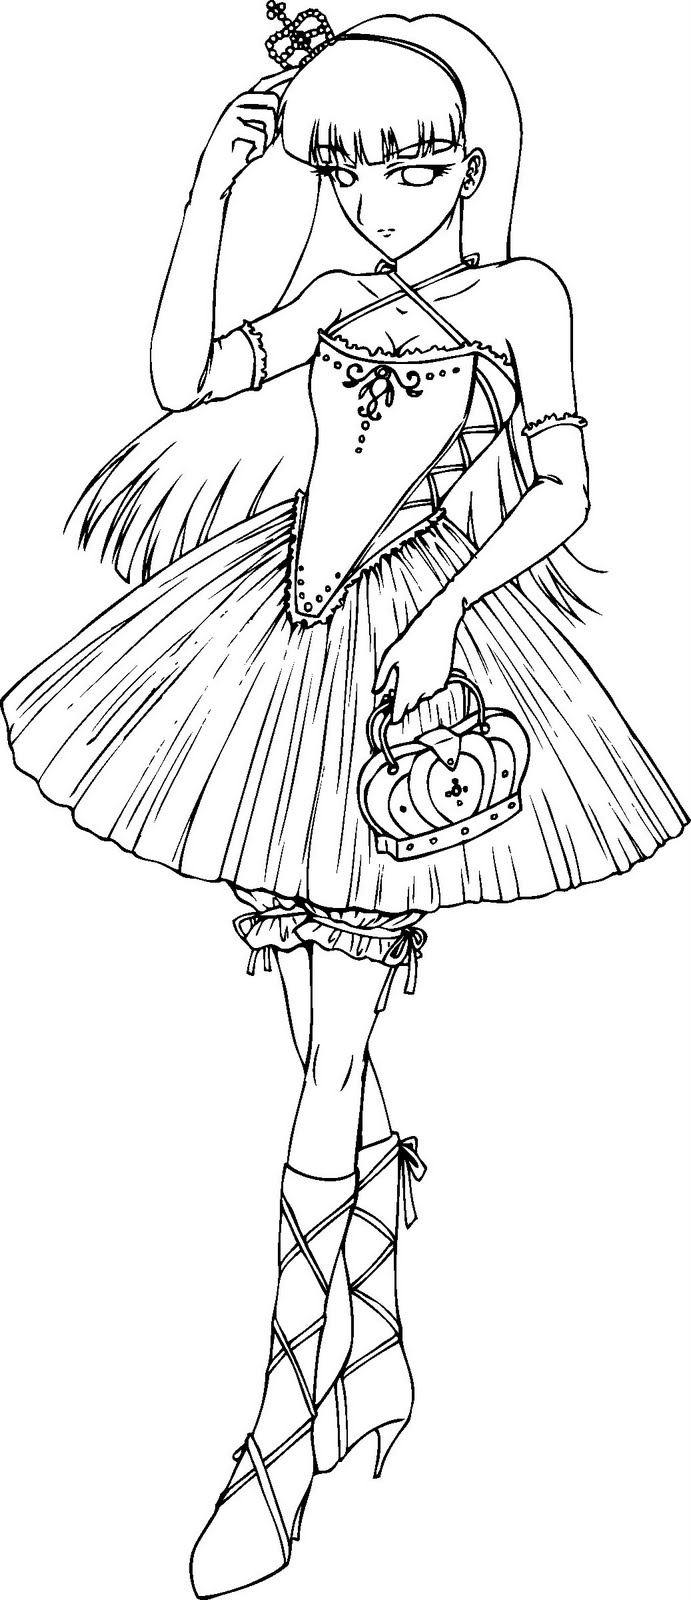 Hentai Gothic Anime Coloring Pages